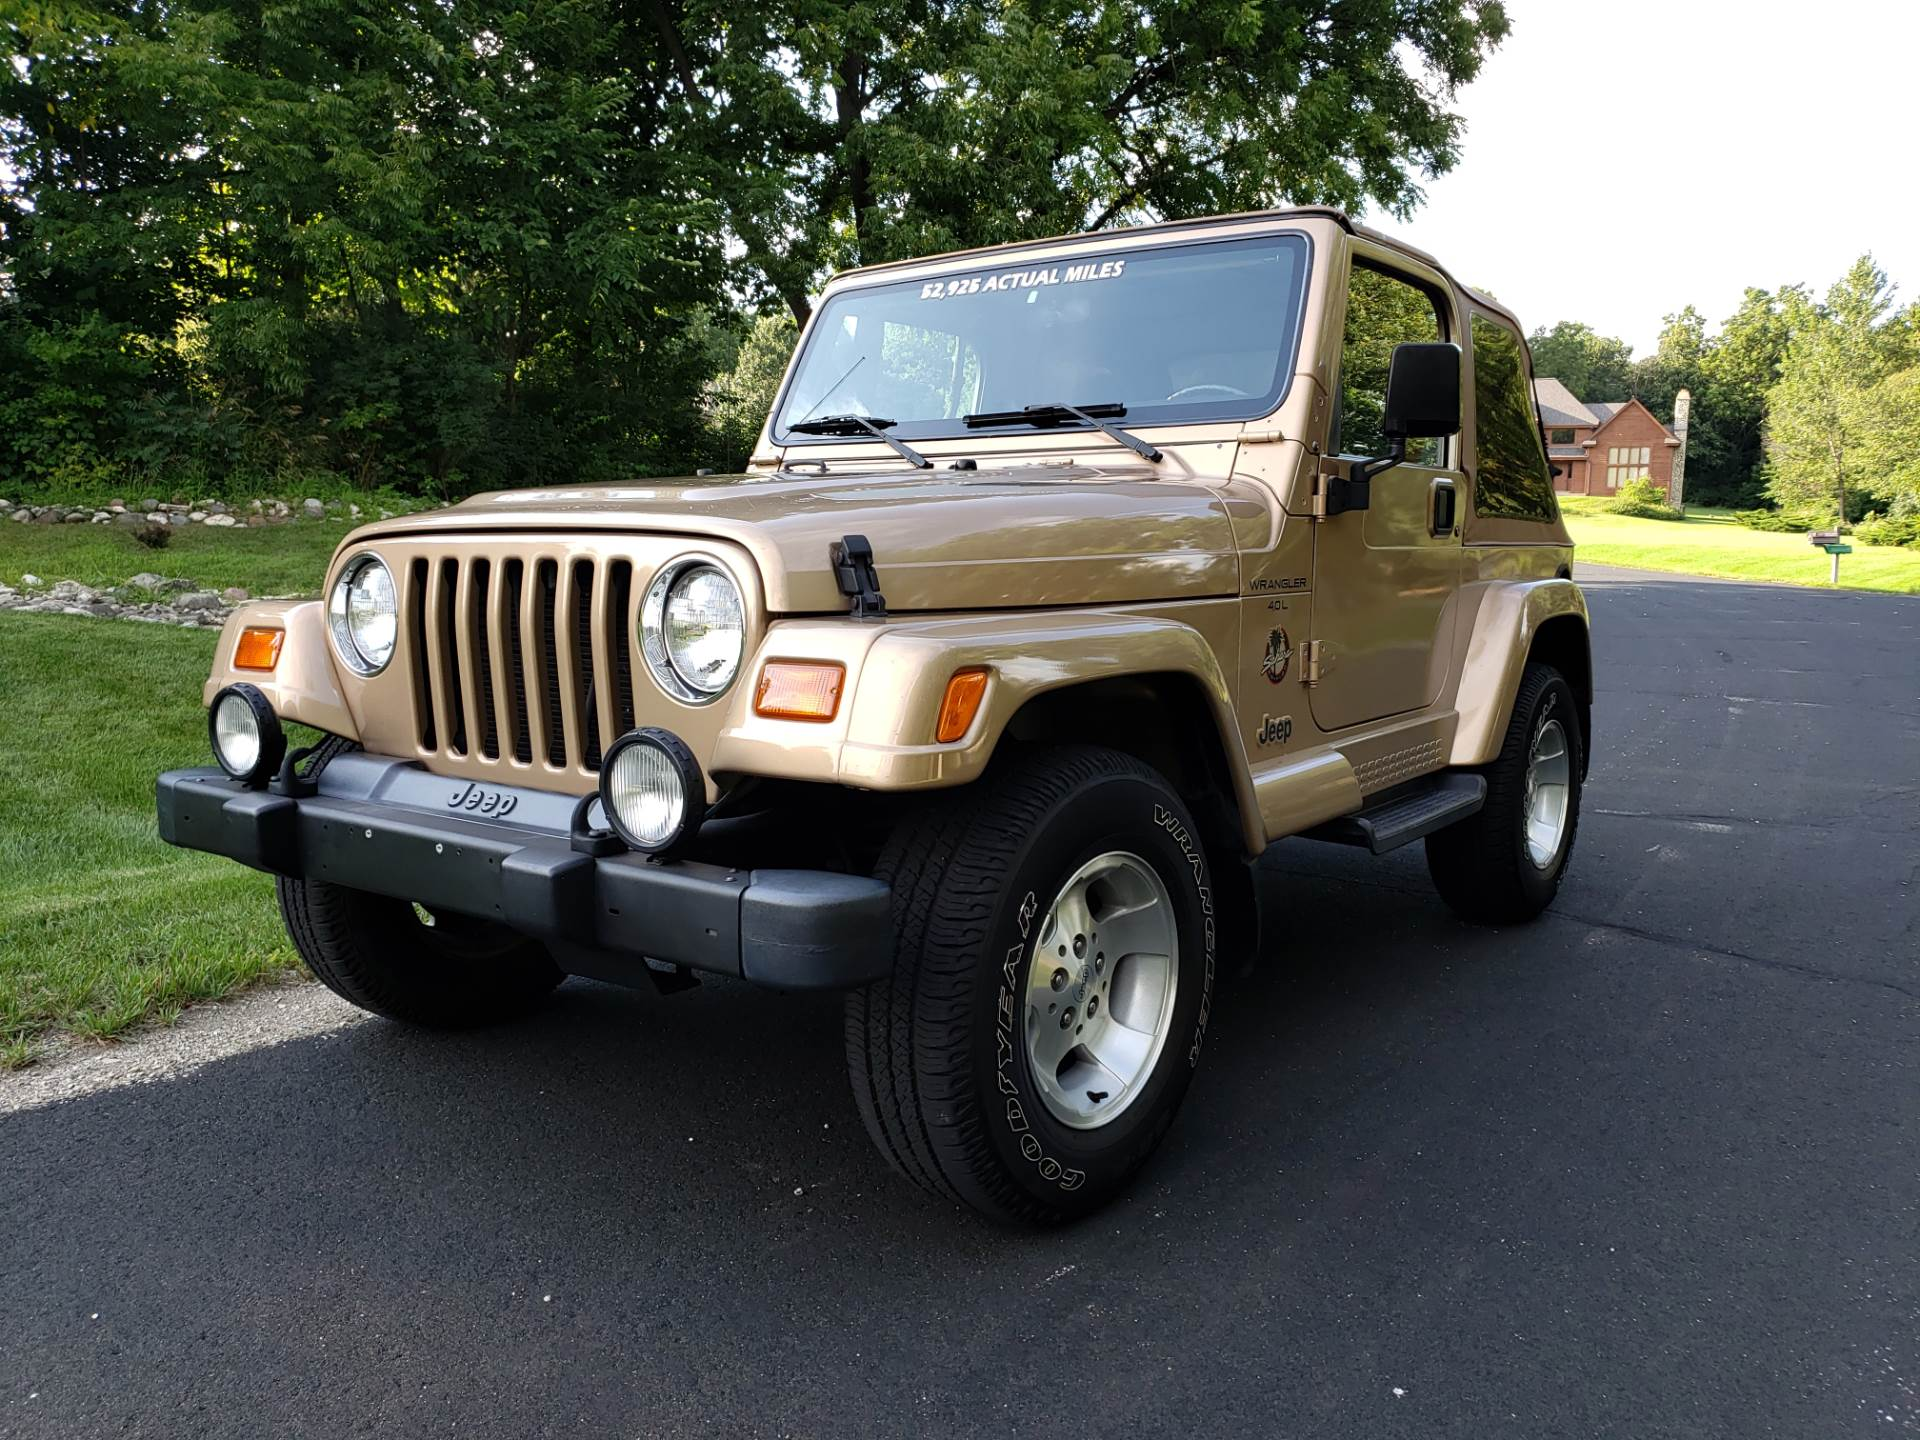 1999 Jeep Wrangler Sahara 2dr 4WD SUV in Big Bend, Wisconsin - Photo 17